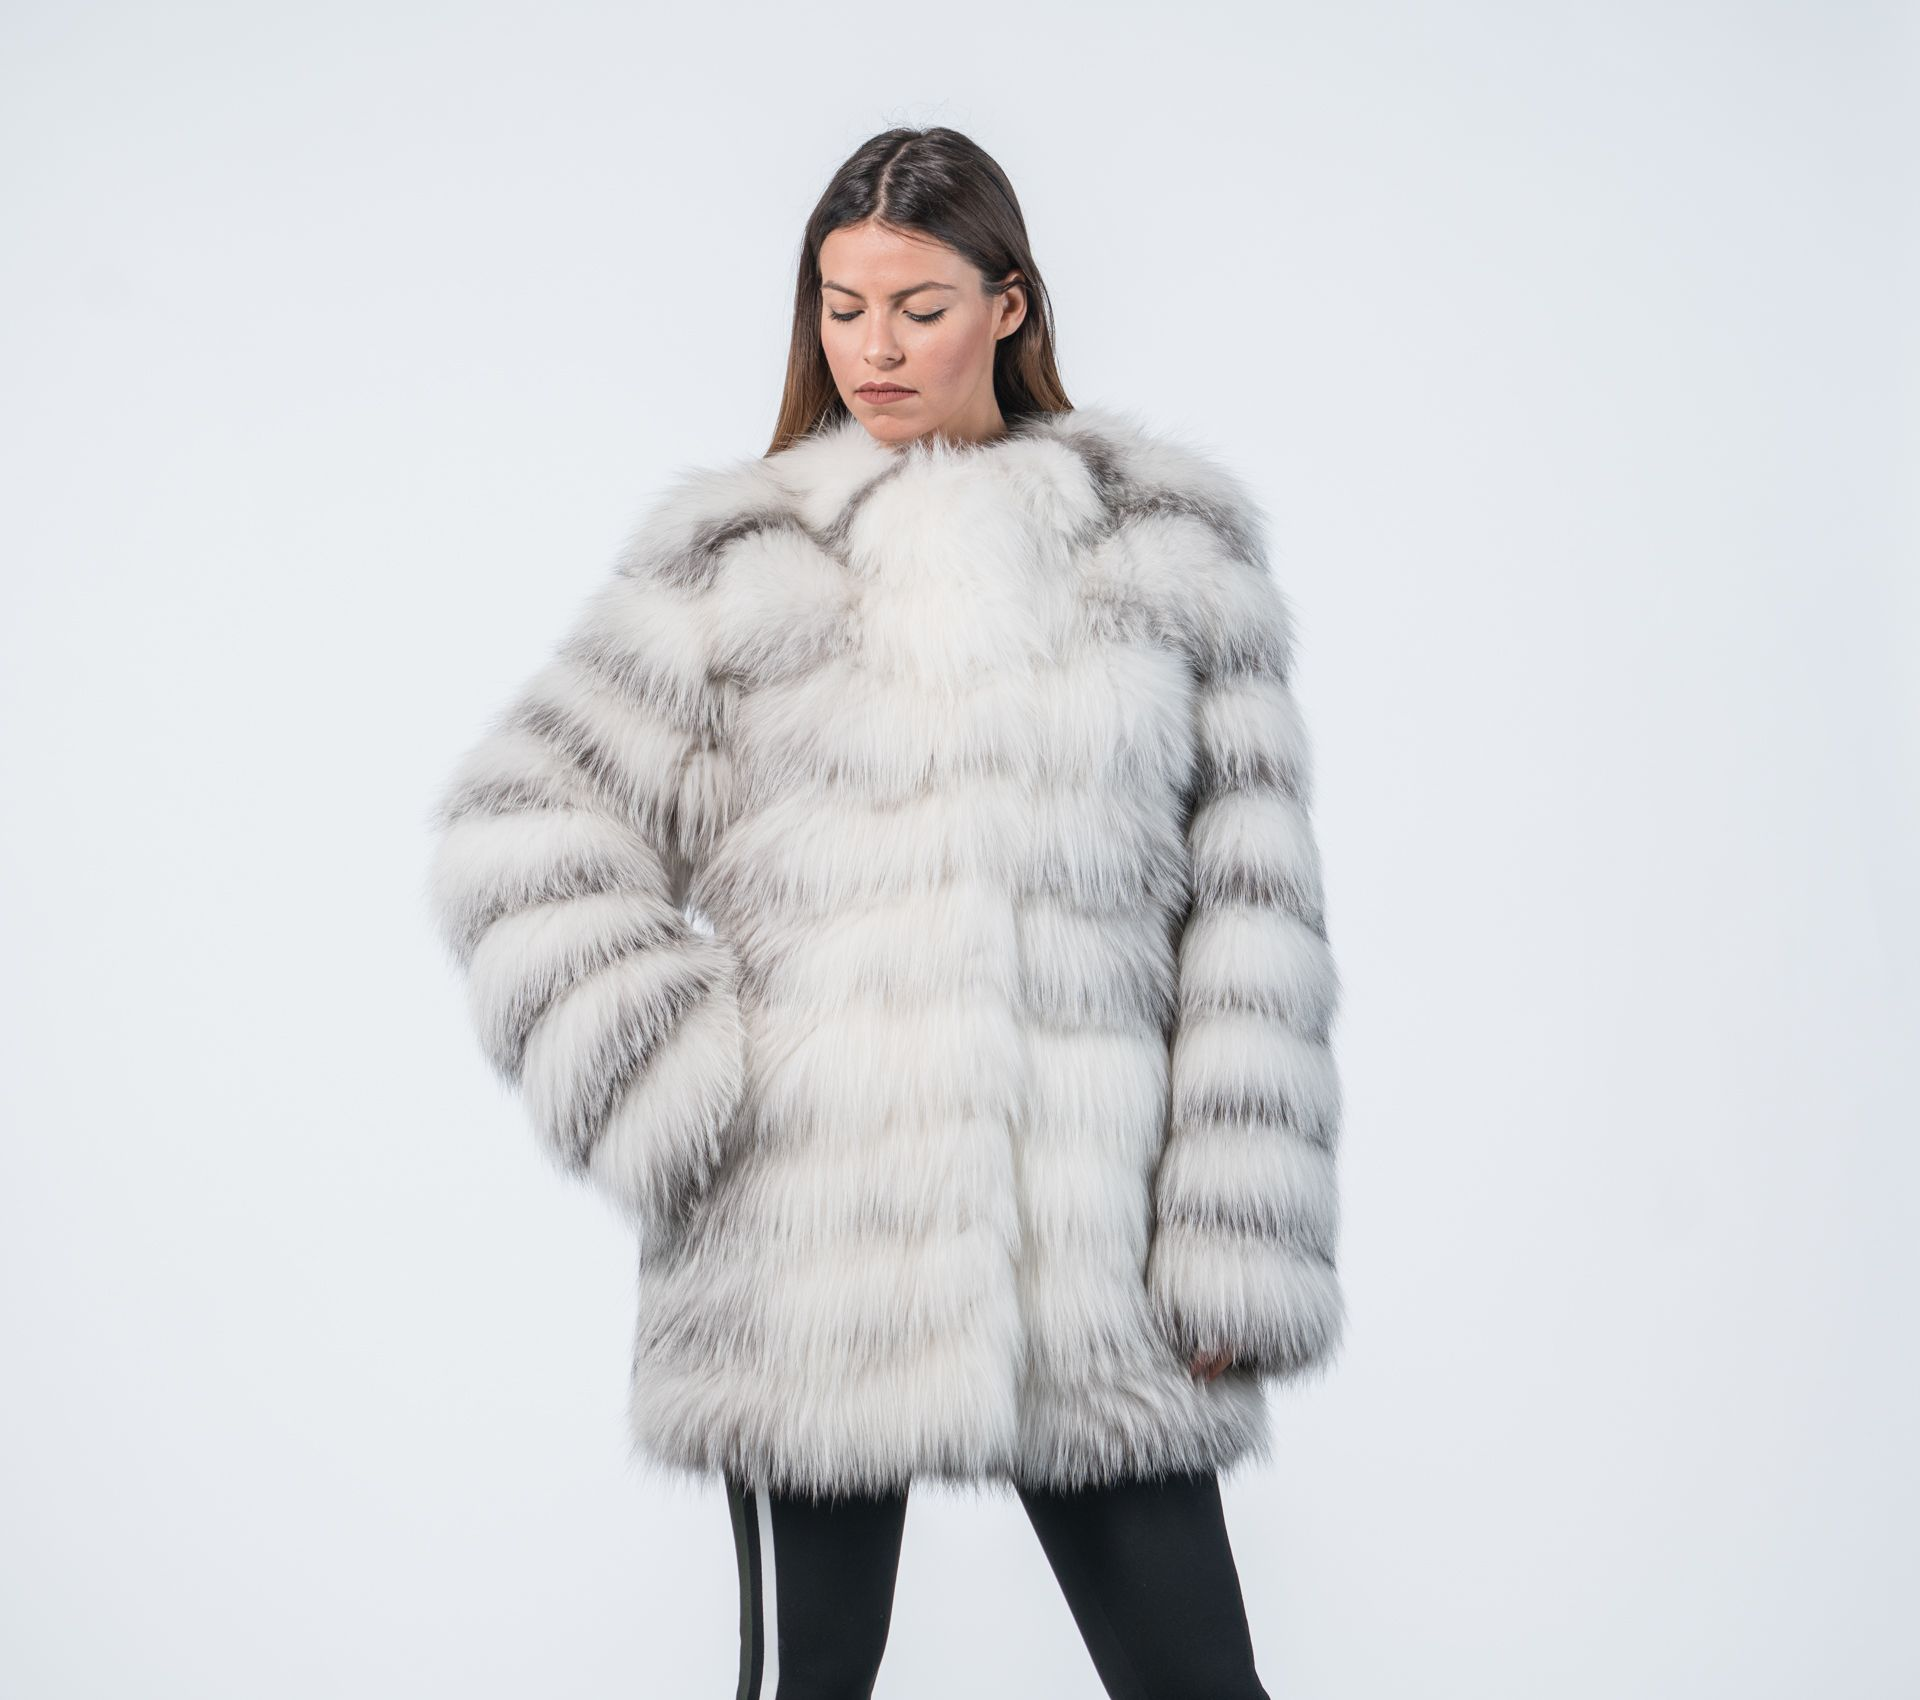 ebf1e3ce2 Fox Marble Fur Coat. #fox #fur #jacket #real #style #realfur #naturalfur  #elegant #haute #luxury#chic #outfit #women #classy #online #store